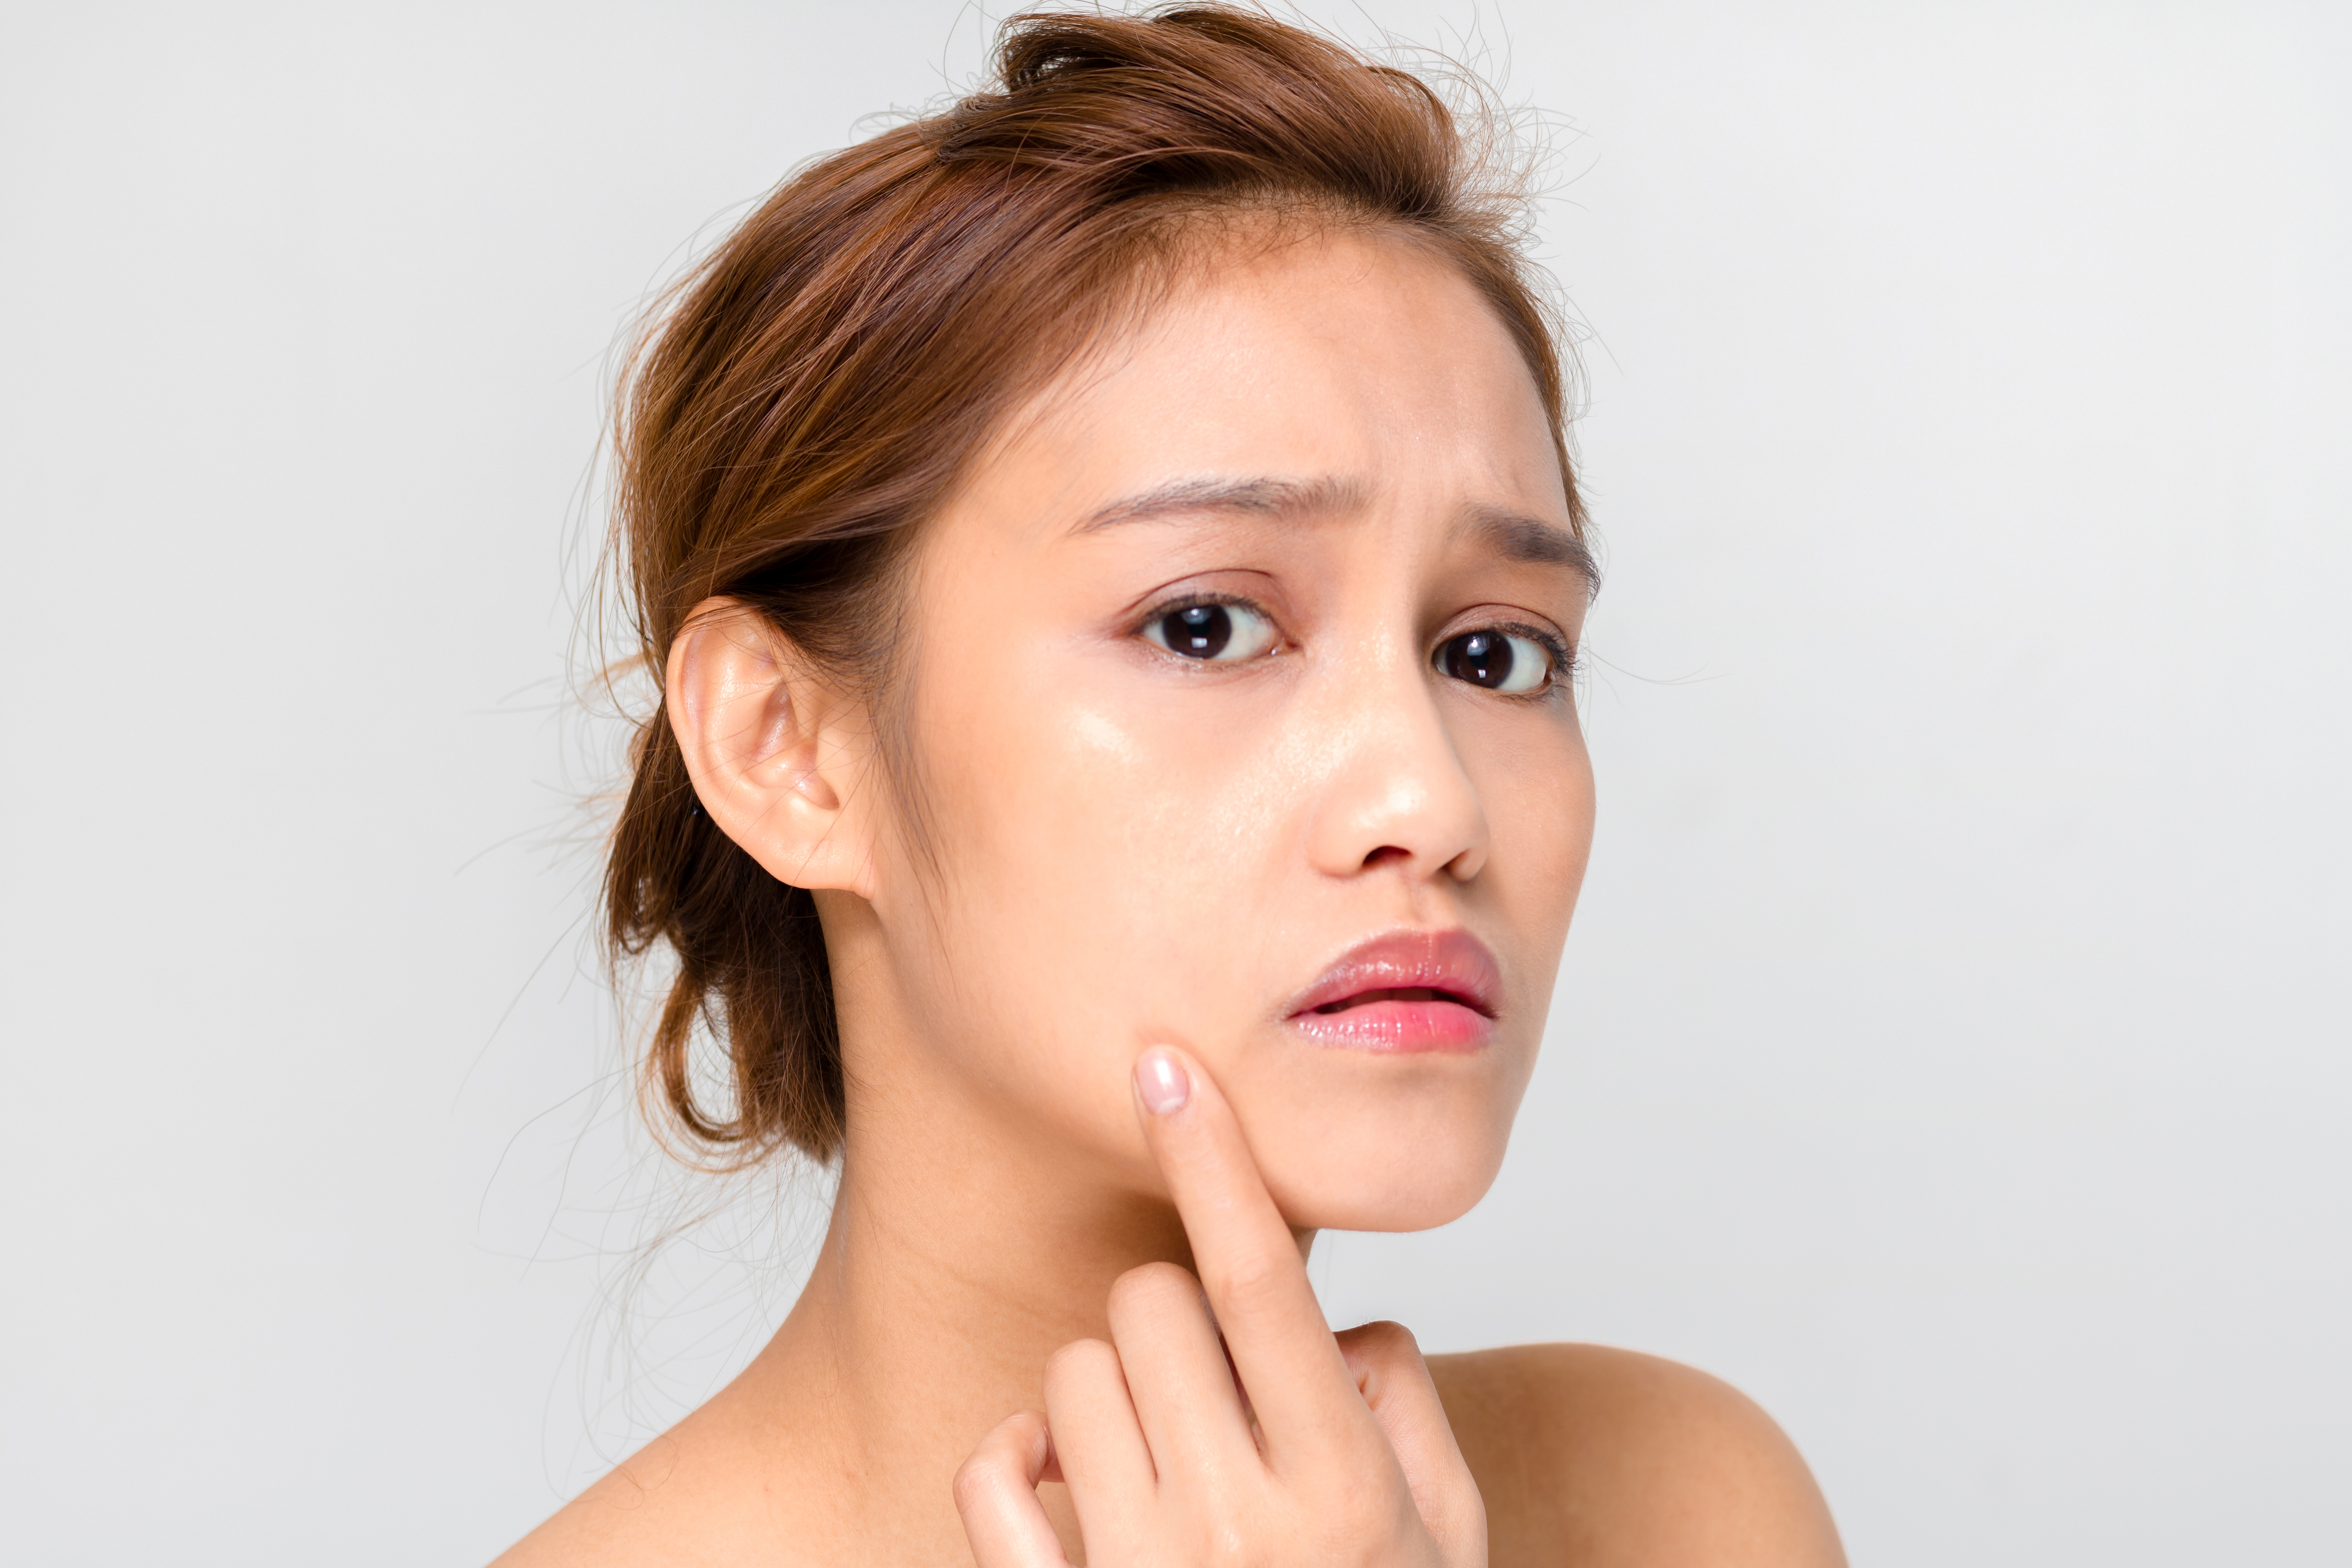 How to get rid of acne: 7 ways that every teenager should know